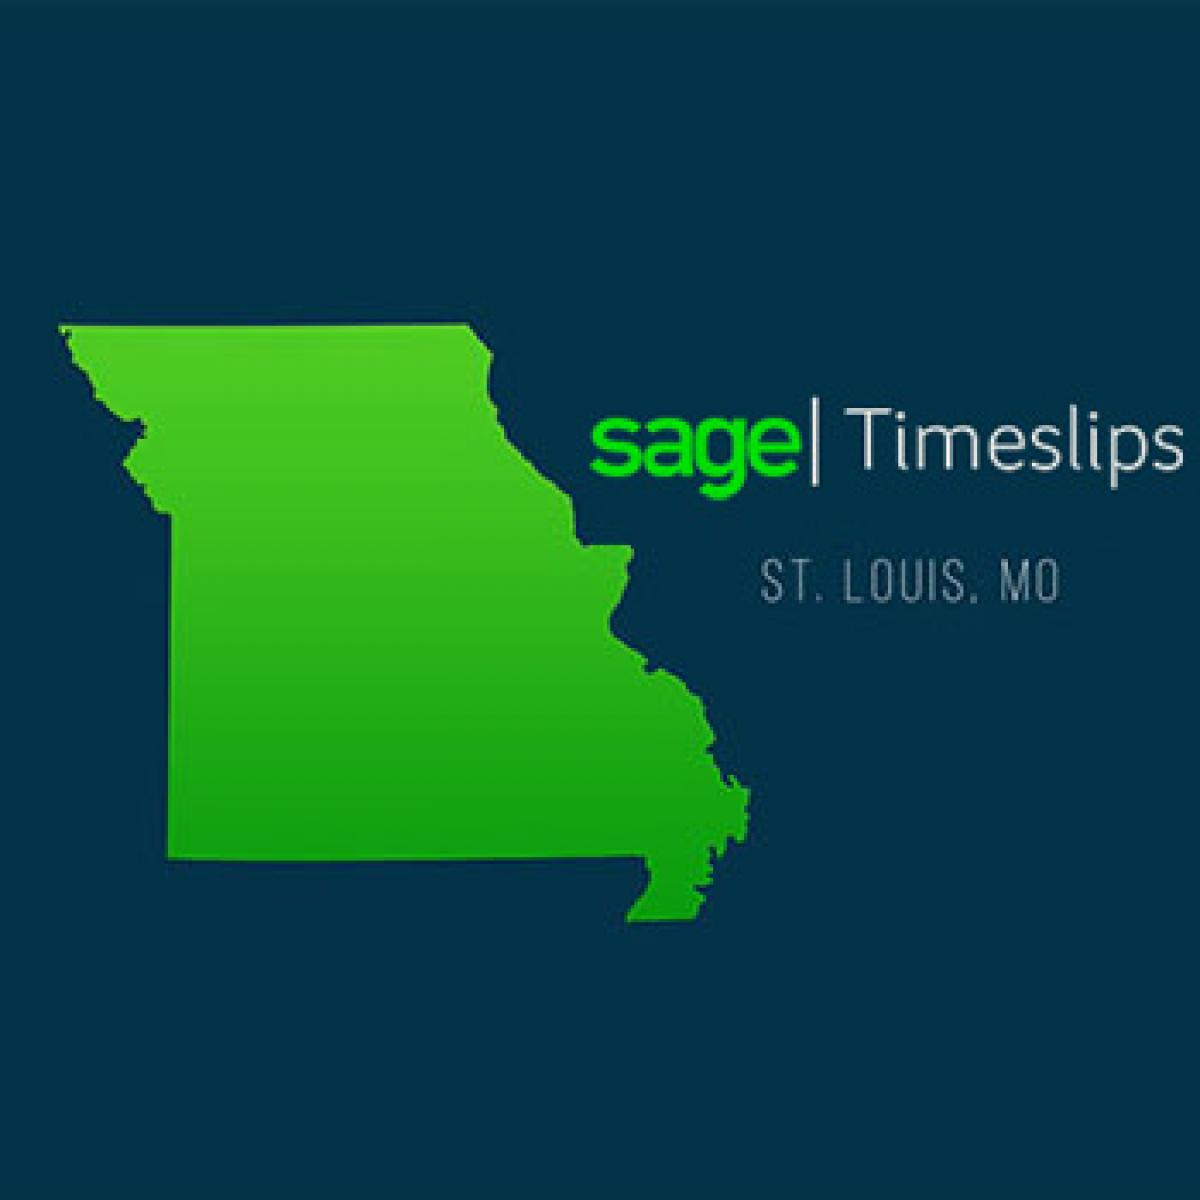 Sage Timeslips Consultant in St. Louis, Missouri